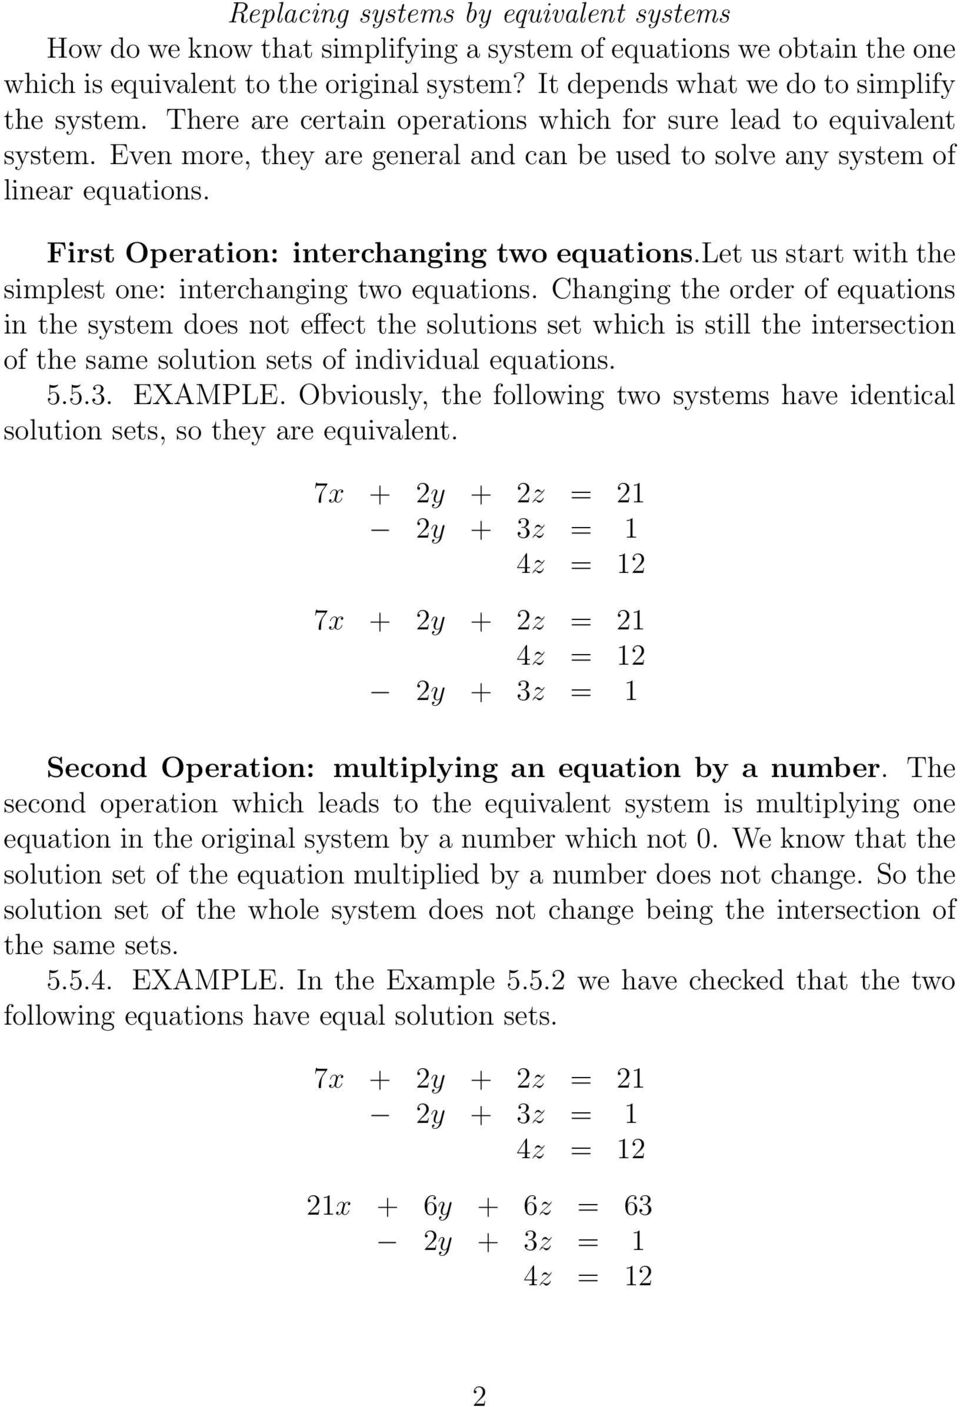 First Operation: interchanging two equationslet us start with the simplest one: interchanging two equations Changing the order of equations in the system does not effect the solutions set which is